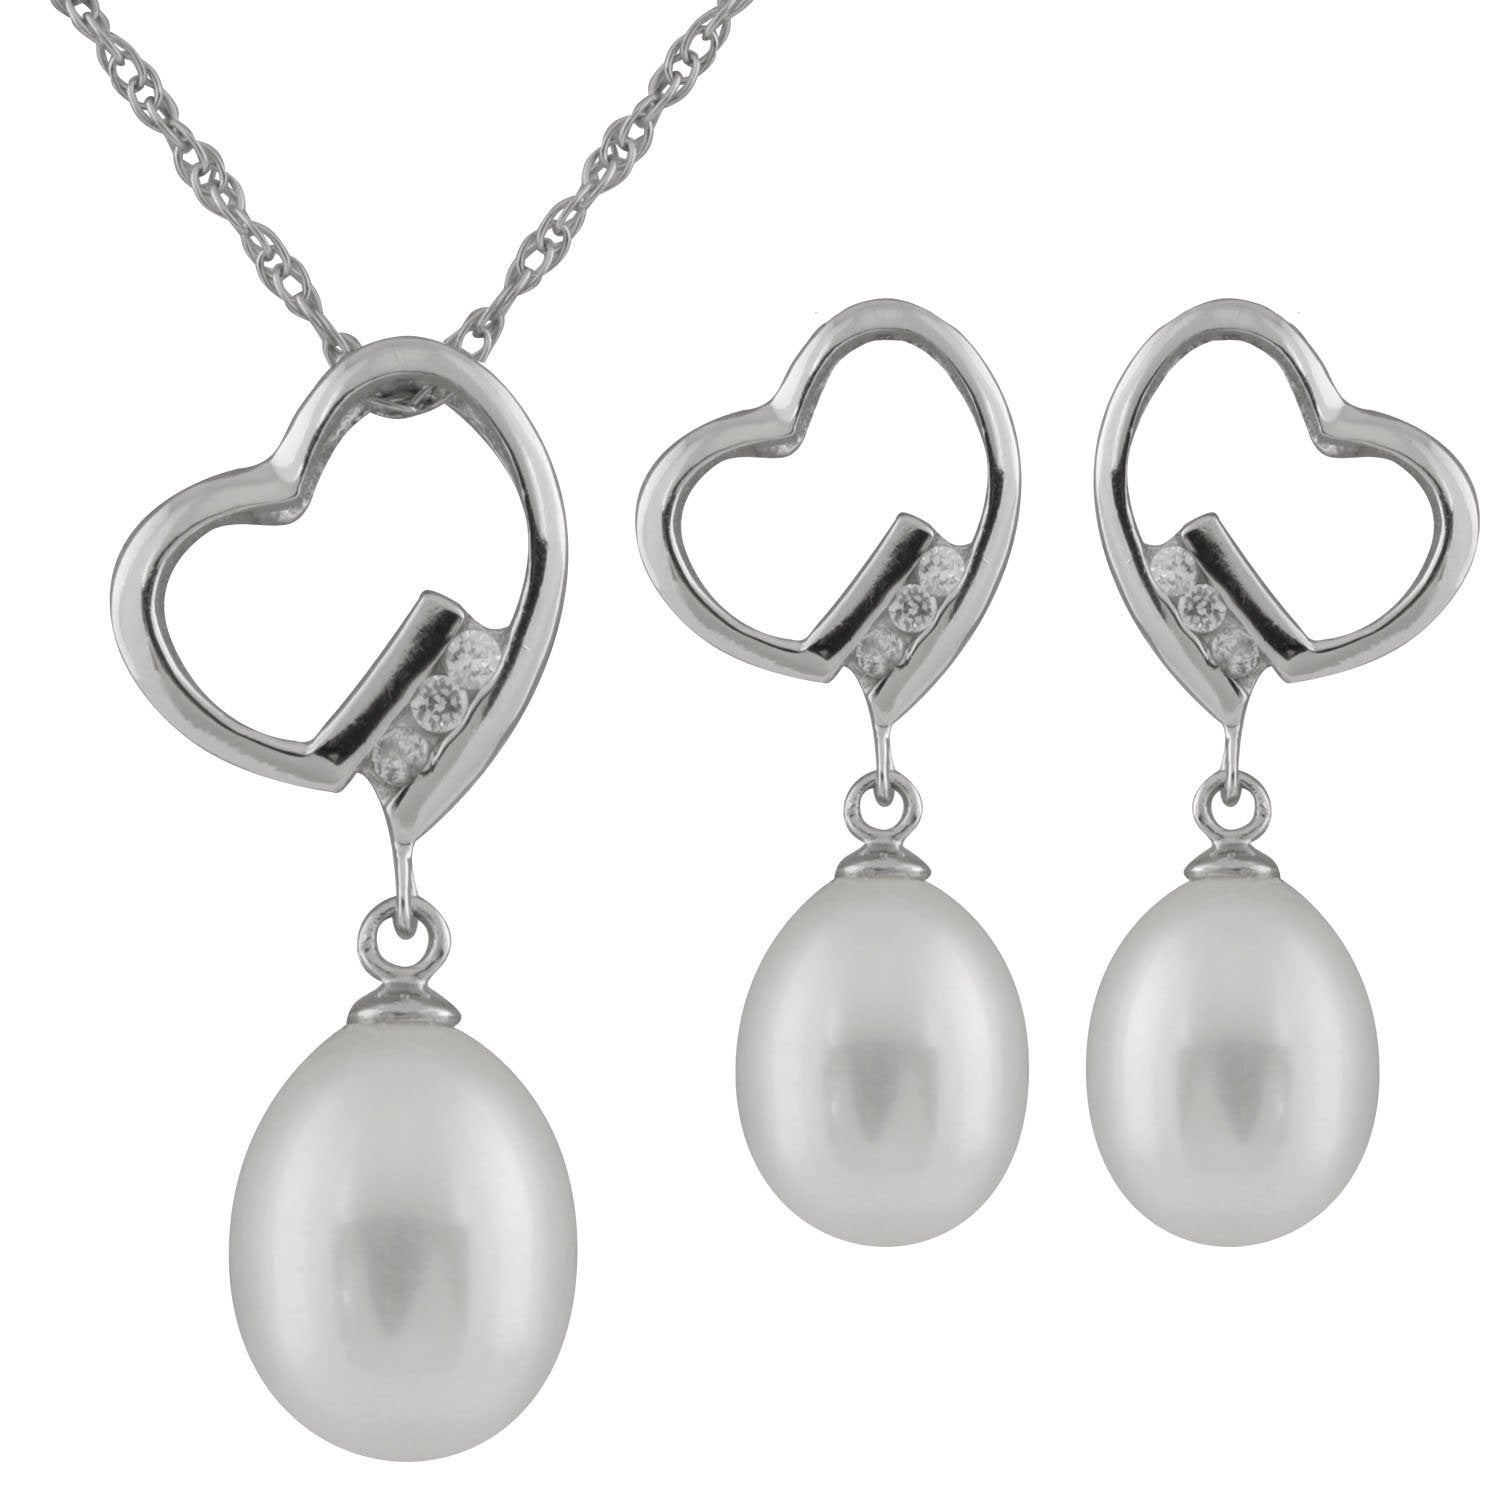 2 Piece Heart Shaped Pearl Set